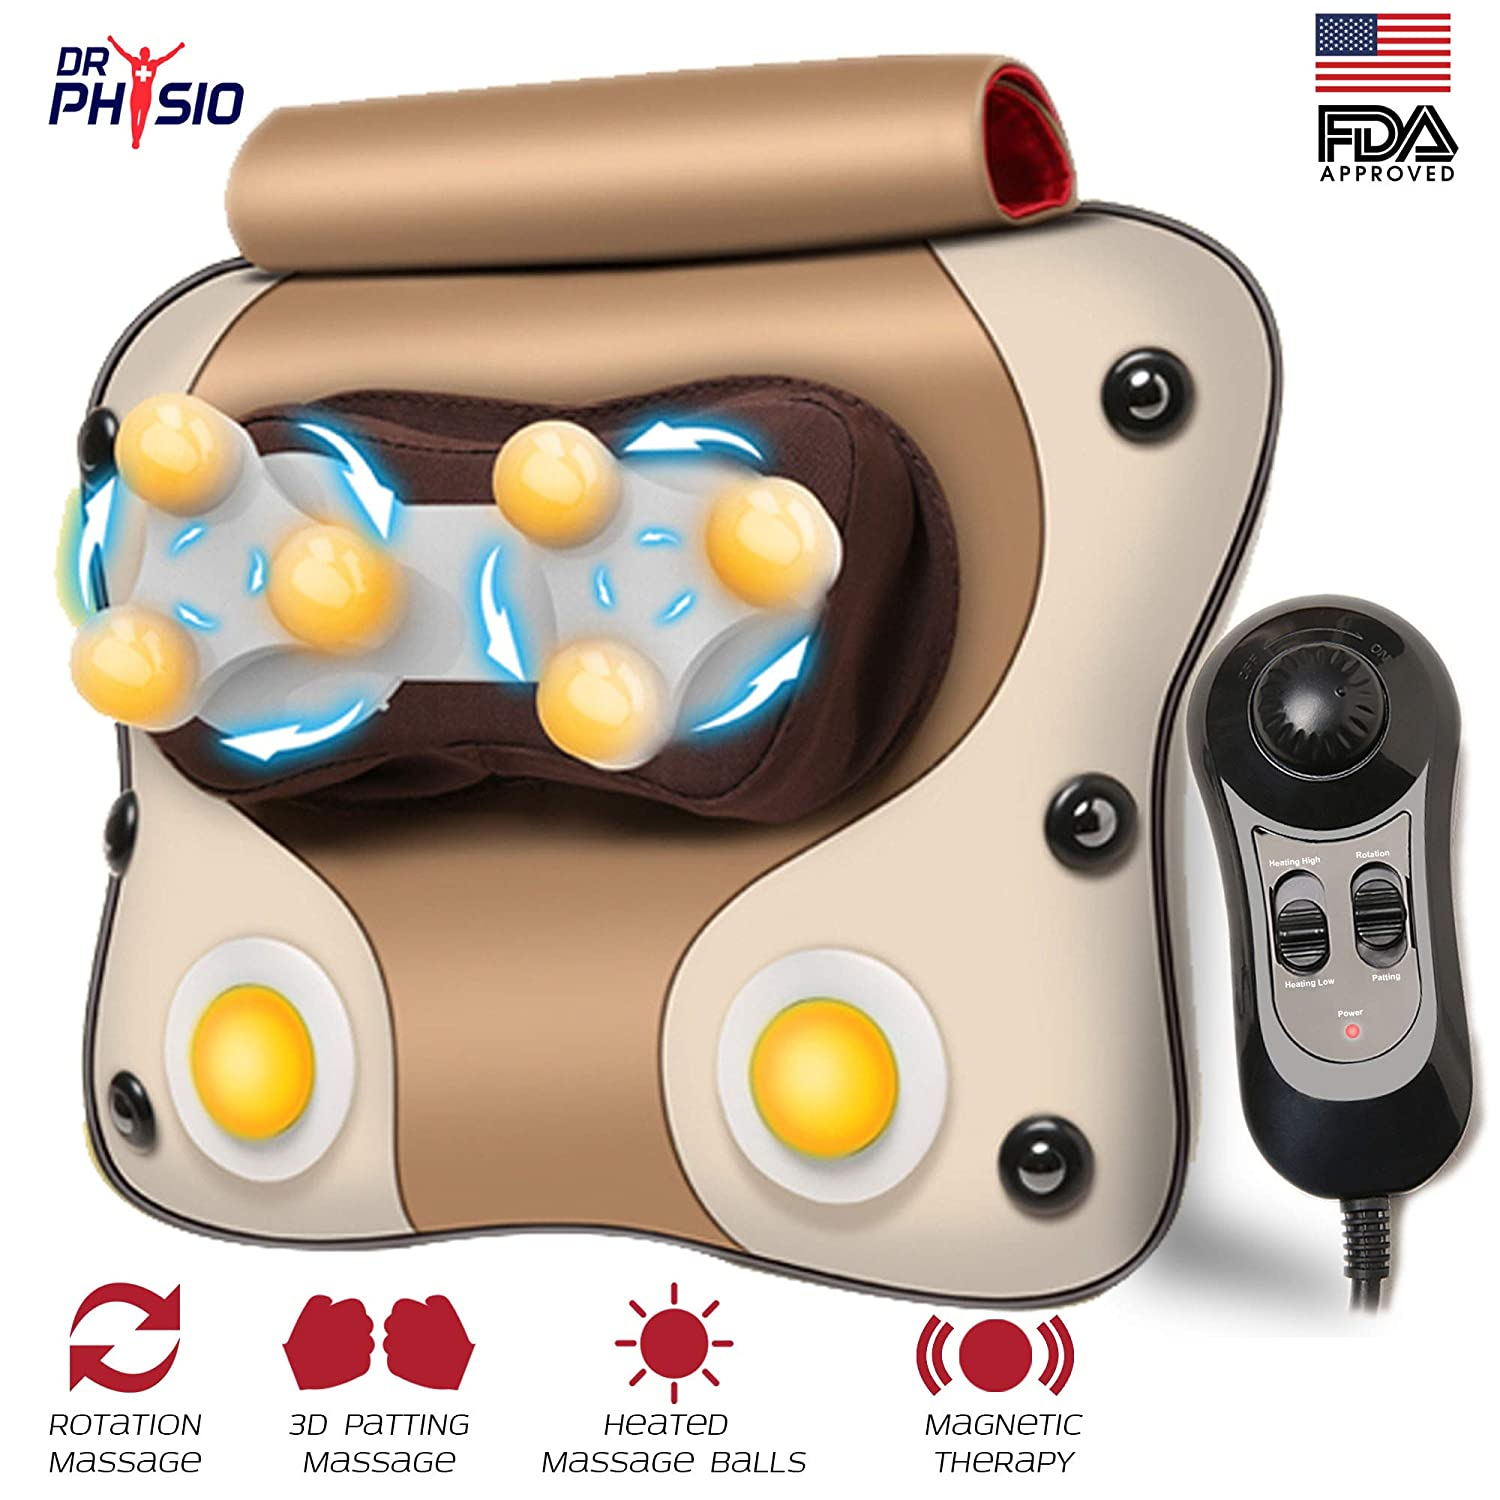 Dr Physio Cushion Massager Pro Brown